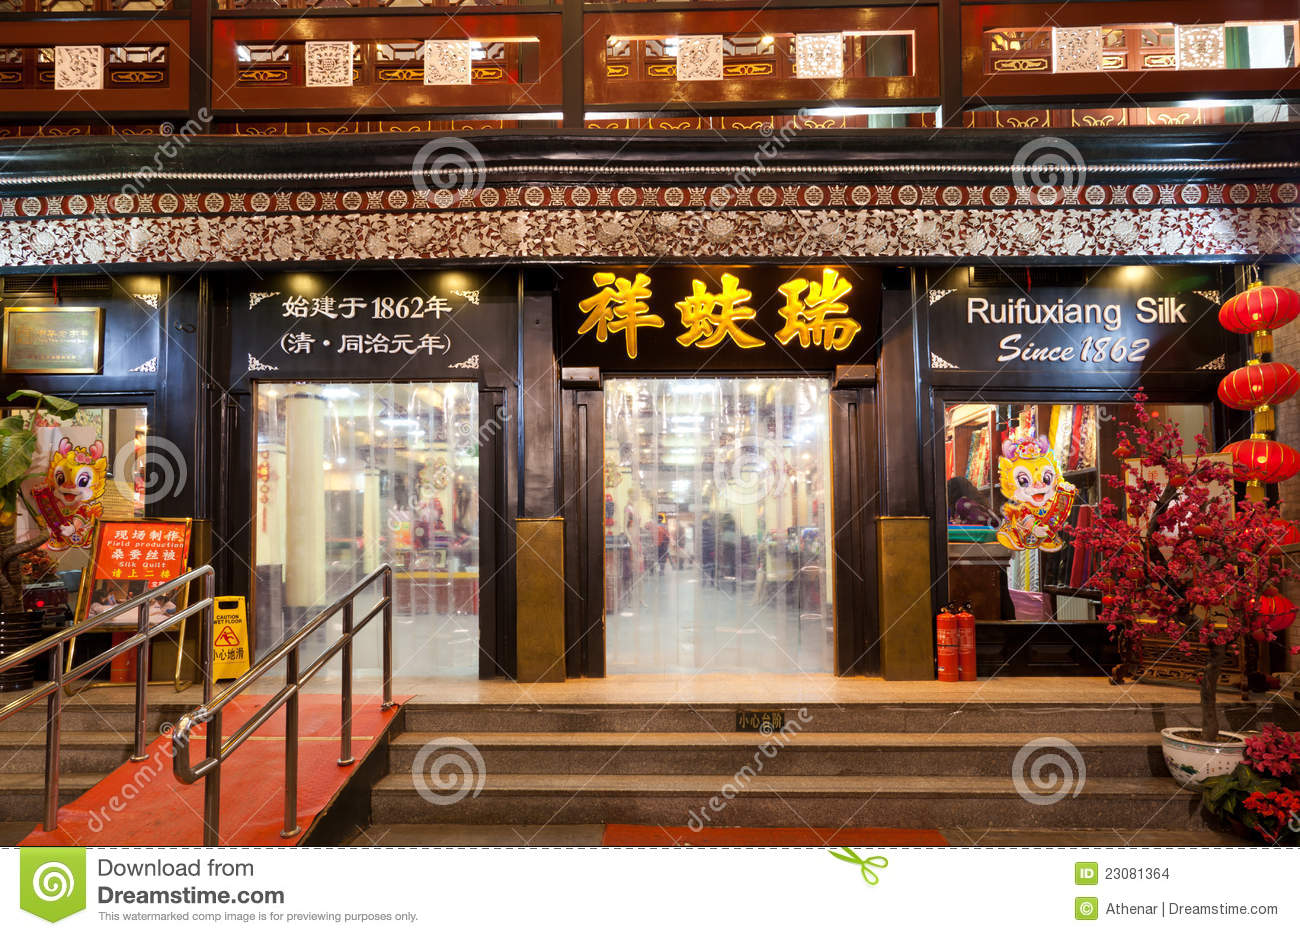 The Ruifuxiang Silk Store is a chain of silk stores in Beijing China